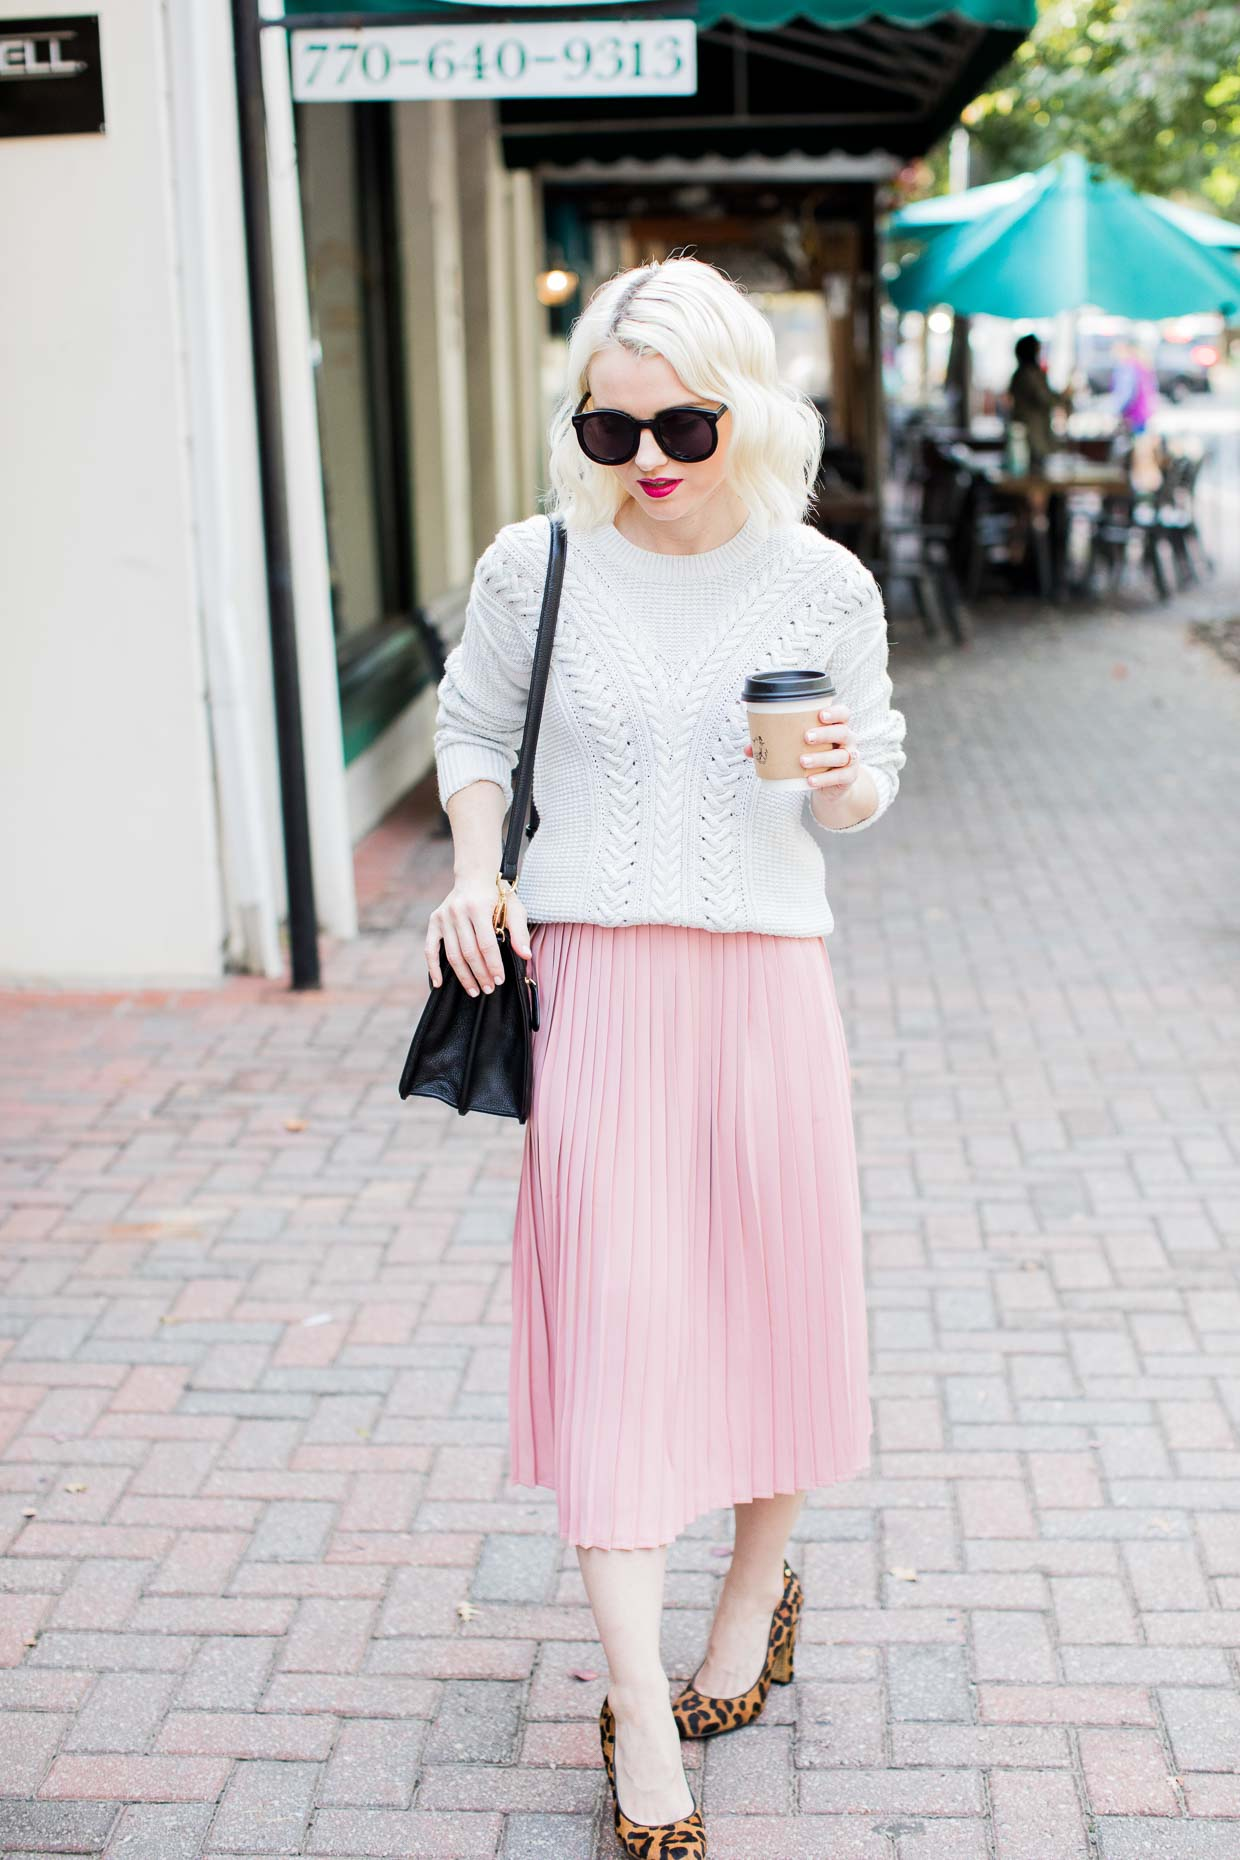 Buy Here Pay Here Atlanta >> Pink Pleated Midi Skirt Styling For Fall - Poor Little It Girl